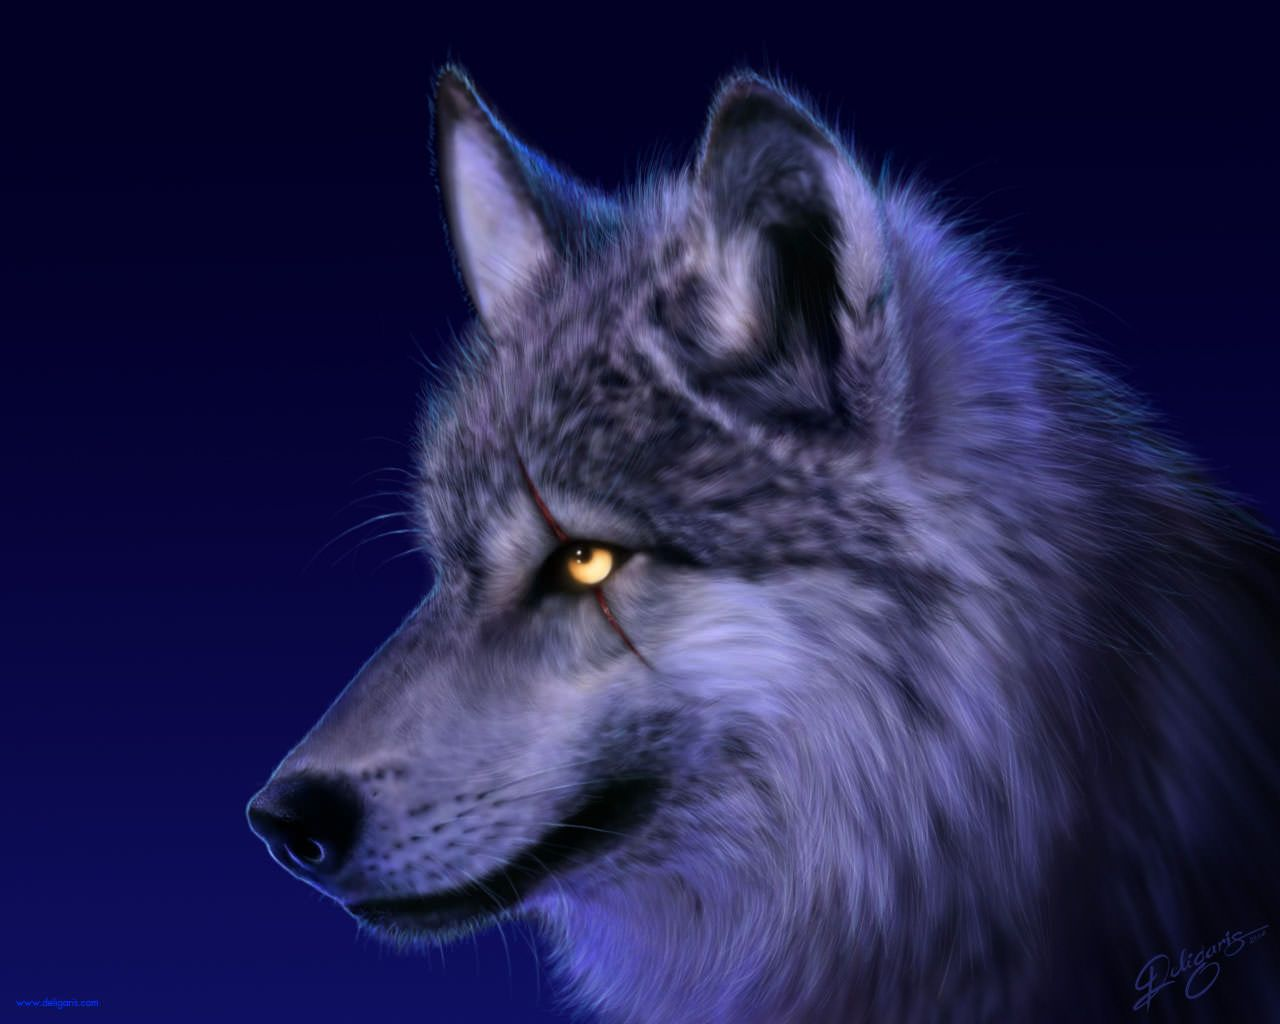 1280x1024 30+ Wolf Backgrounds, Wallpapers, Images | FreeCreatives